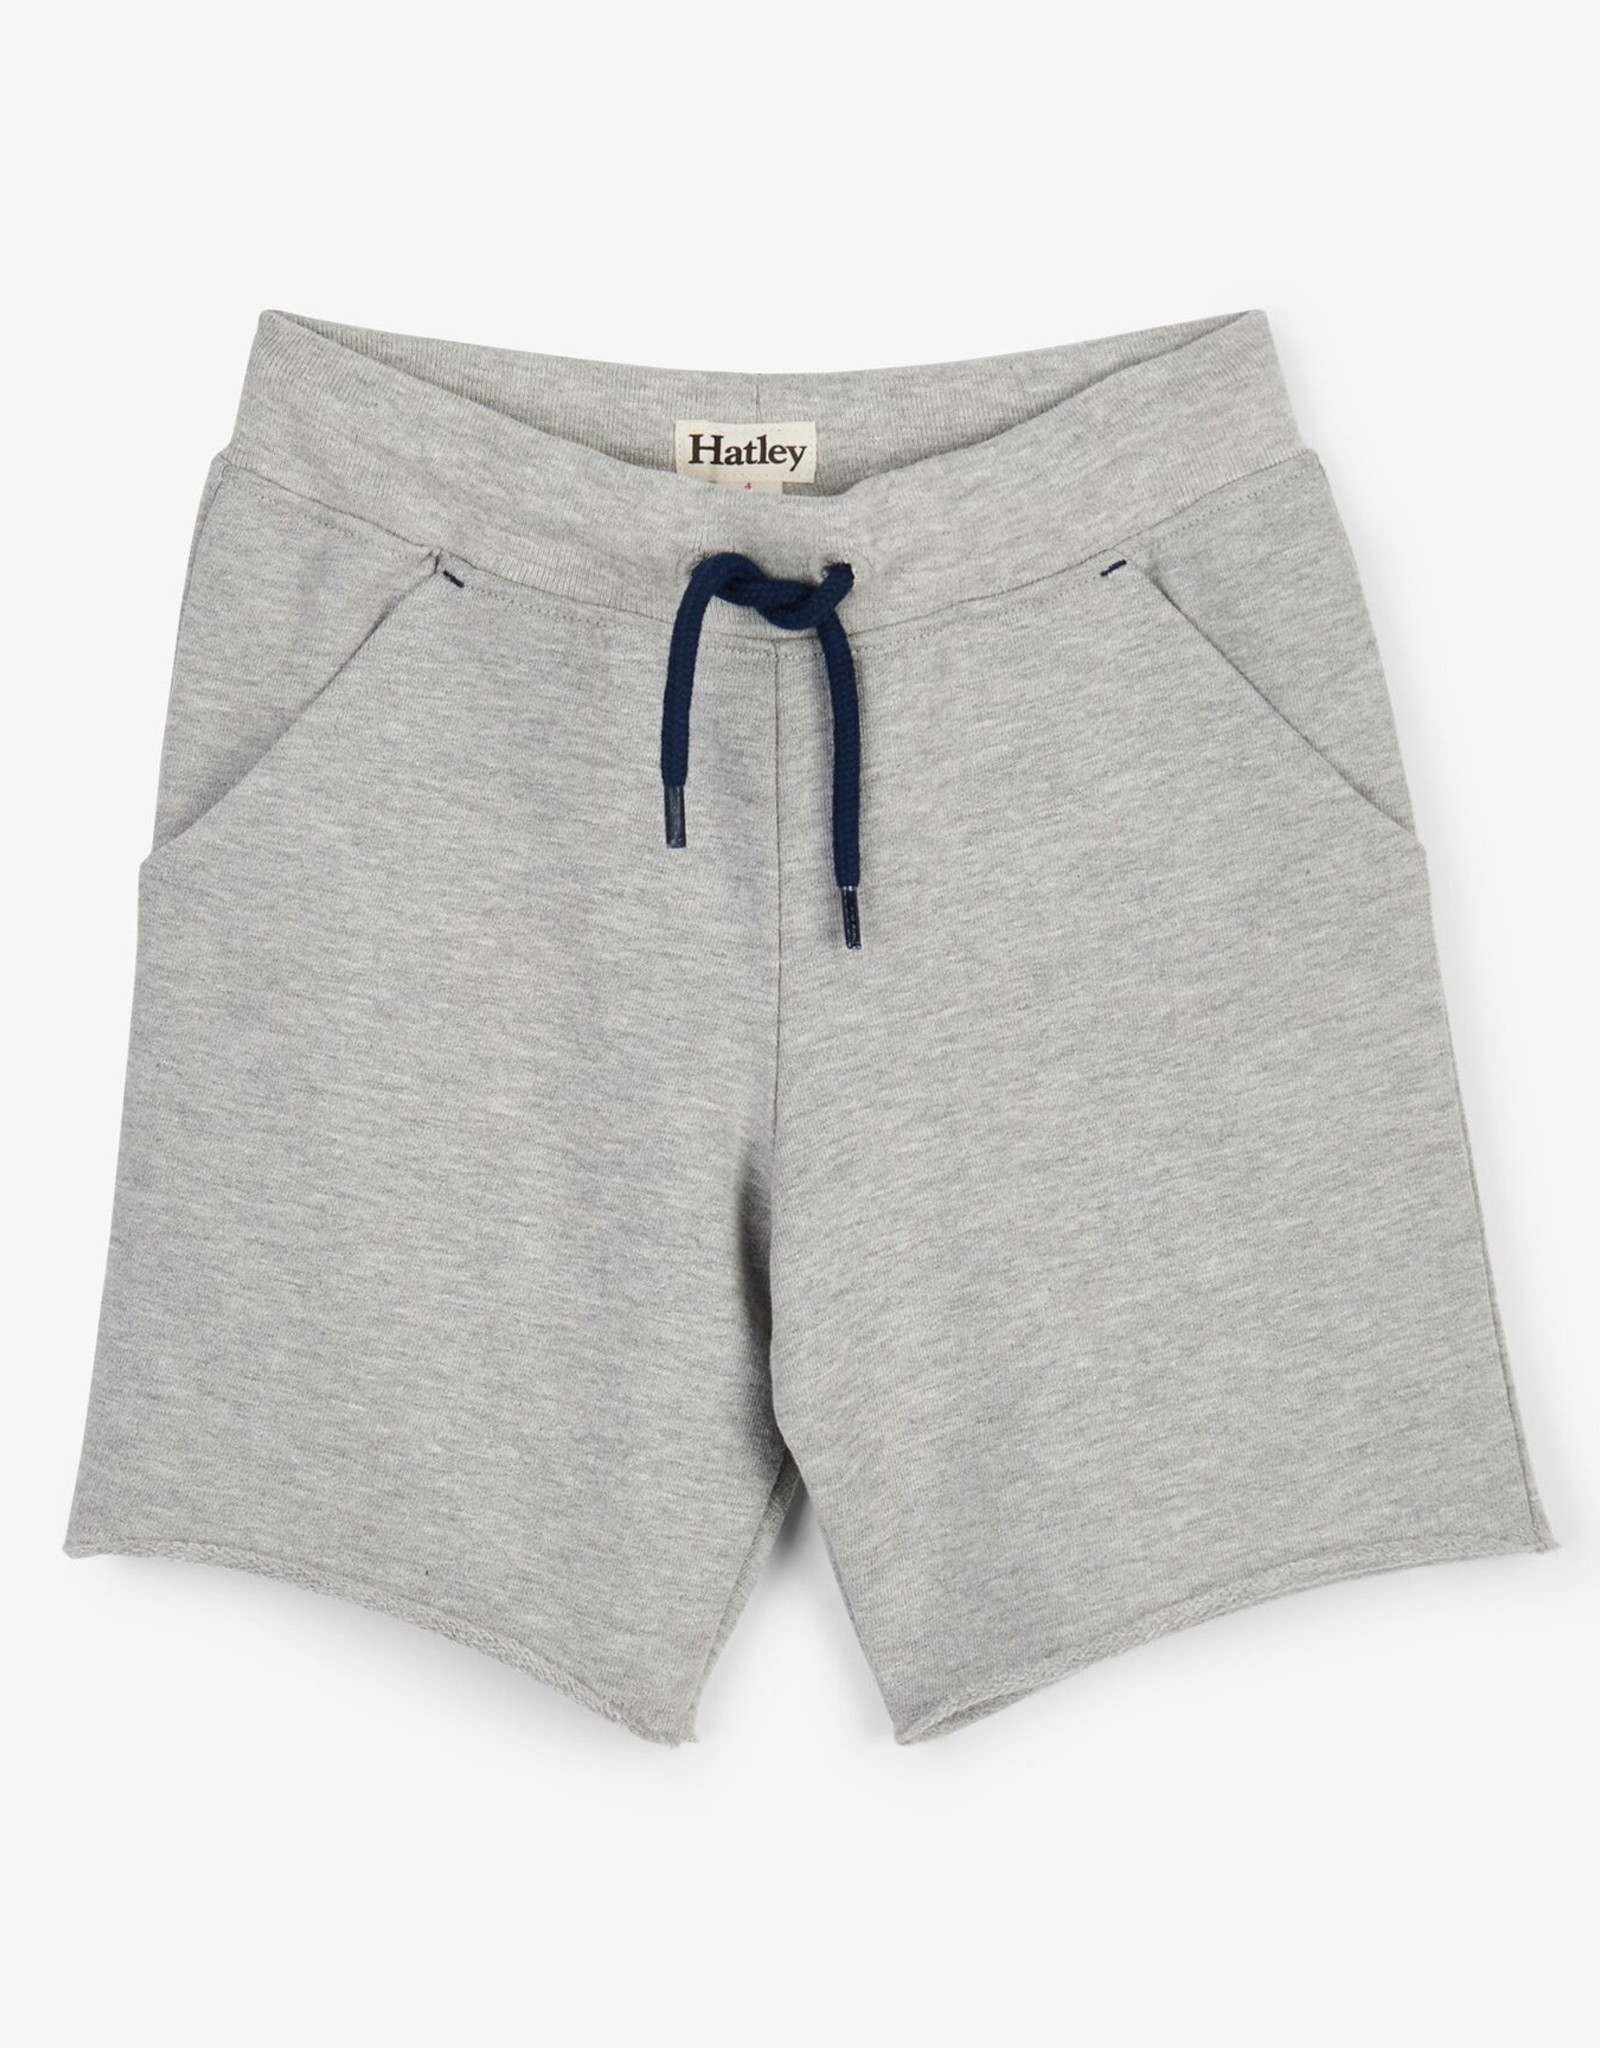 Hatley French Terry Shorts Grey